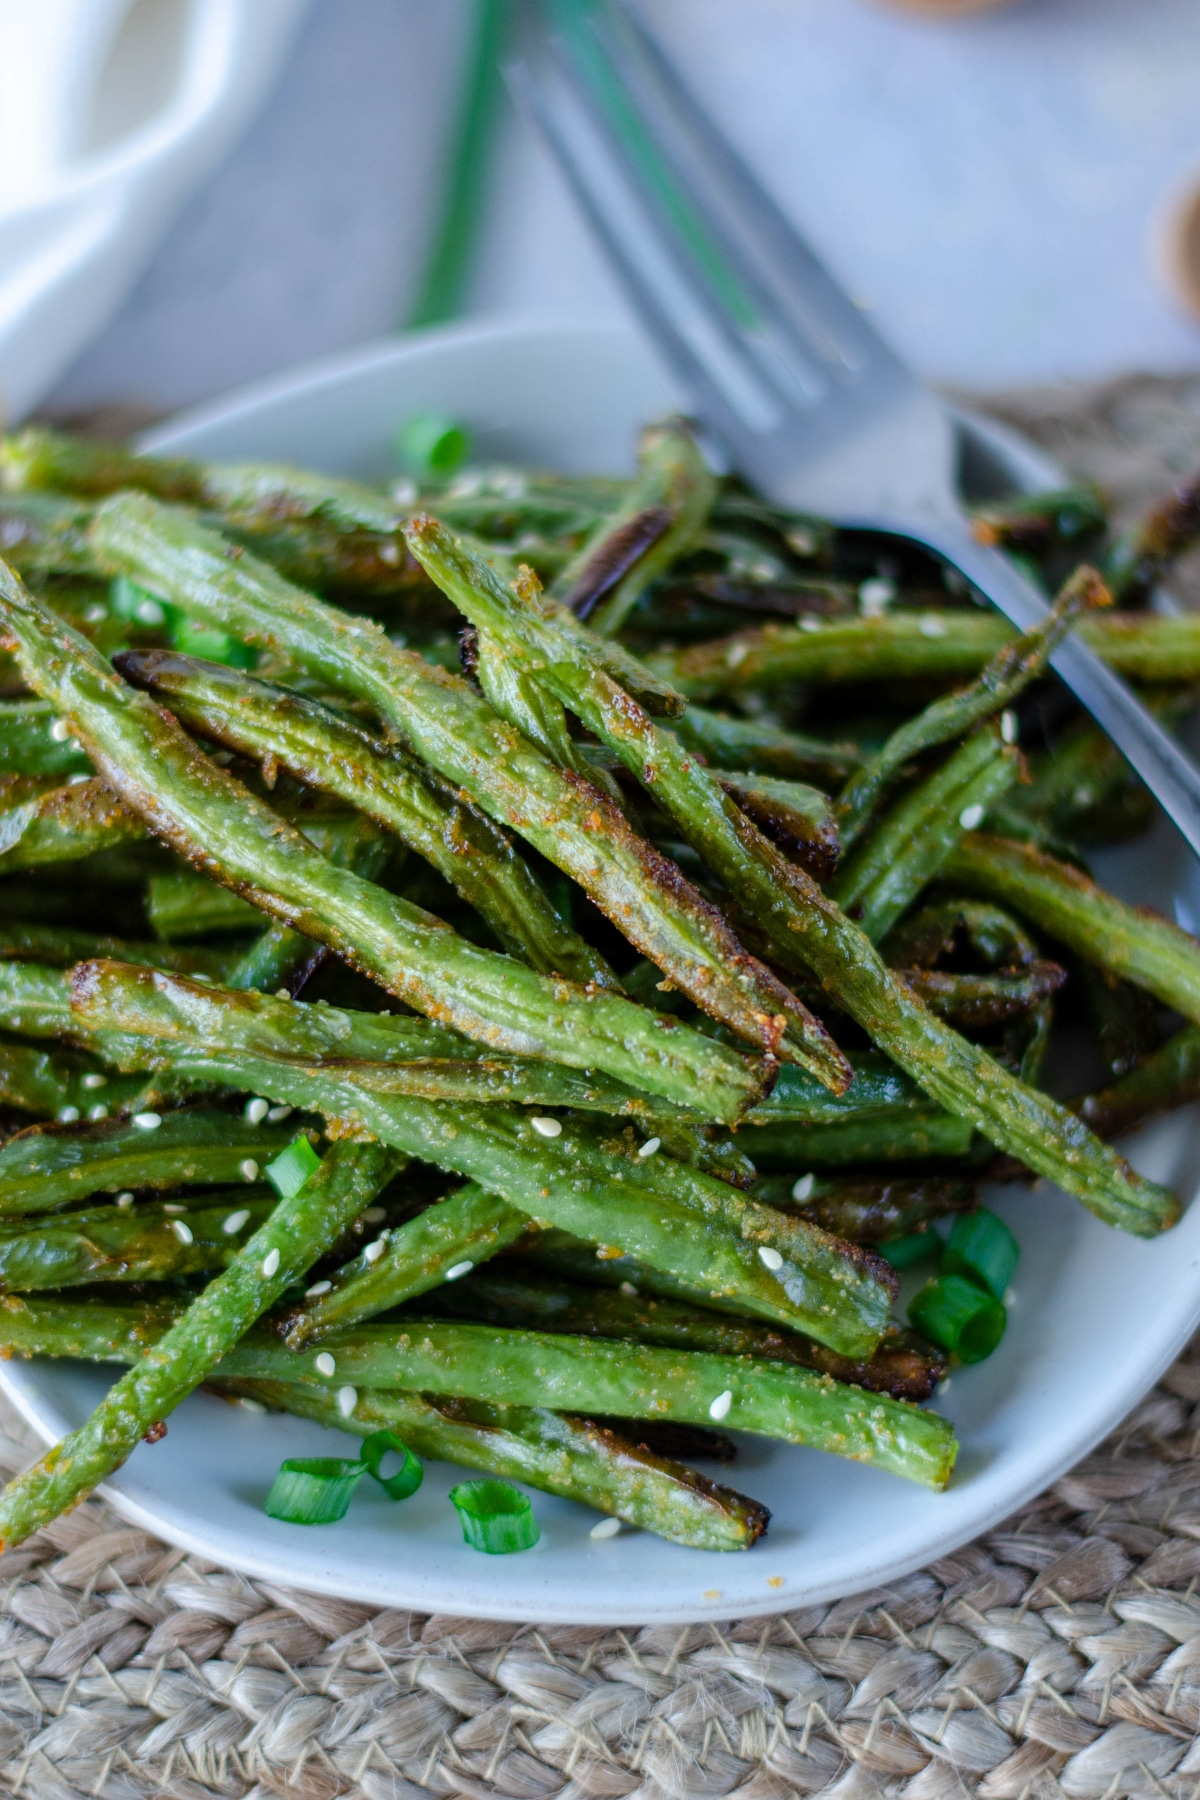 Crispy air fried green beans garnished and served on a white plate on a light woven dinner mat. For on the plate.